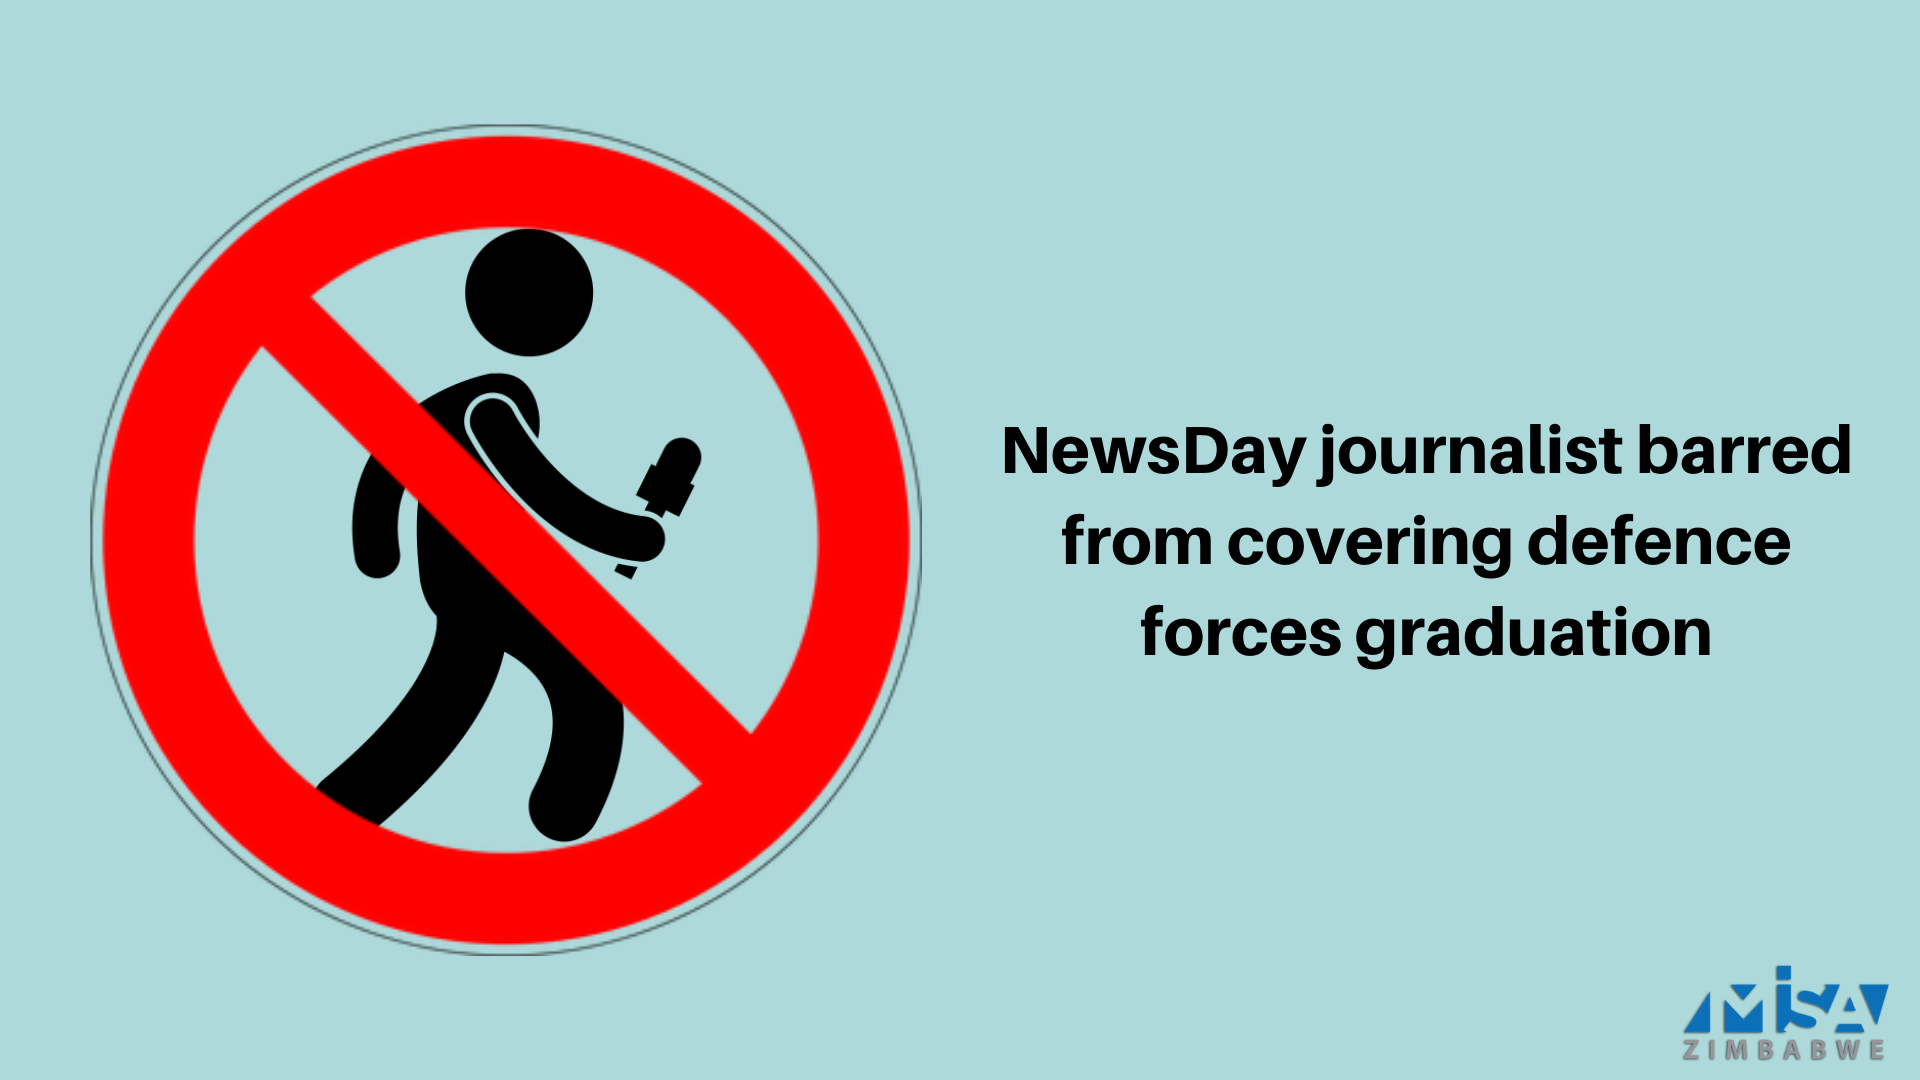 NewsDay journalist barred from covering defence forces graduation